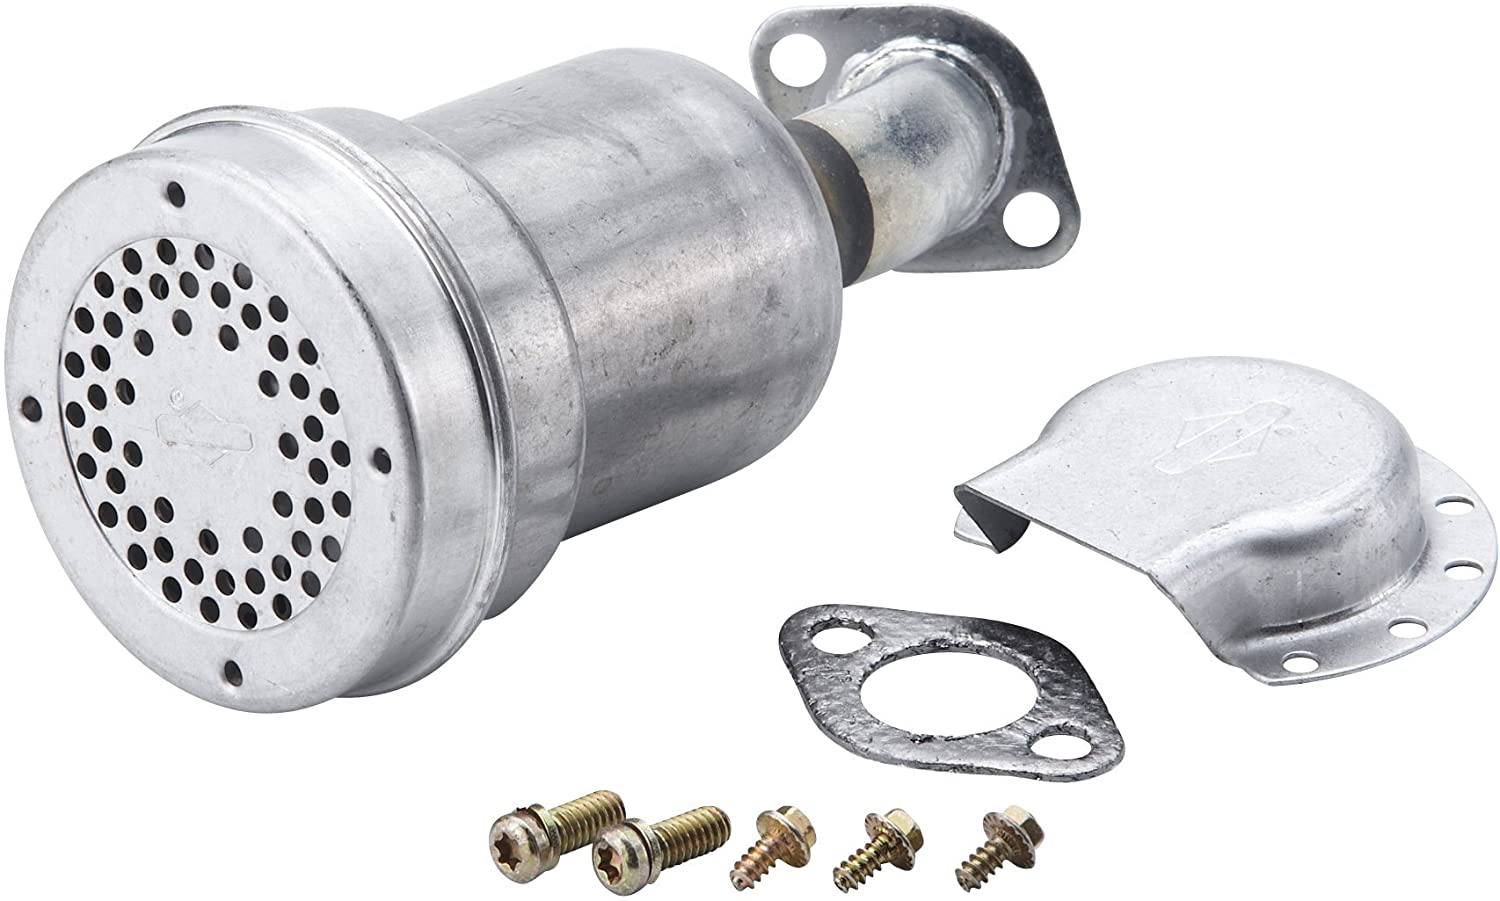 Horizontal Engines with a 1//2-Inch NPT Briggs /& Stratton 493288 Lo-Tone Muffler For 2-4 HP 11 CID